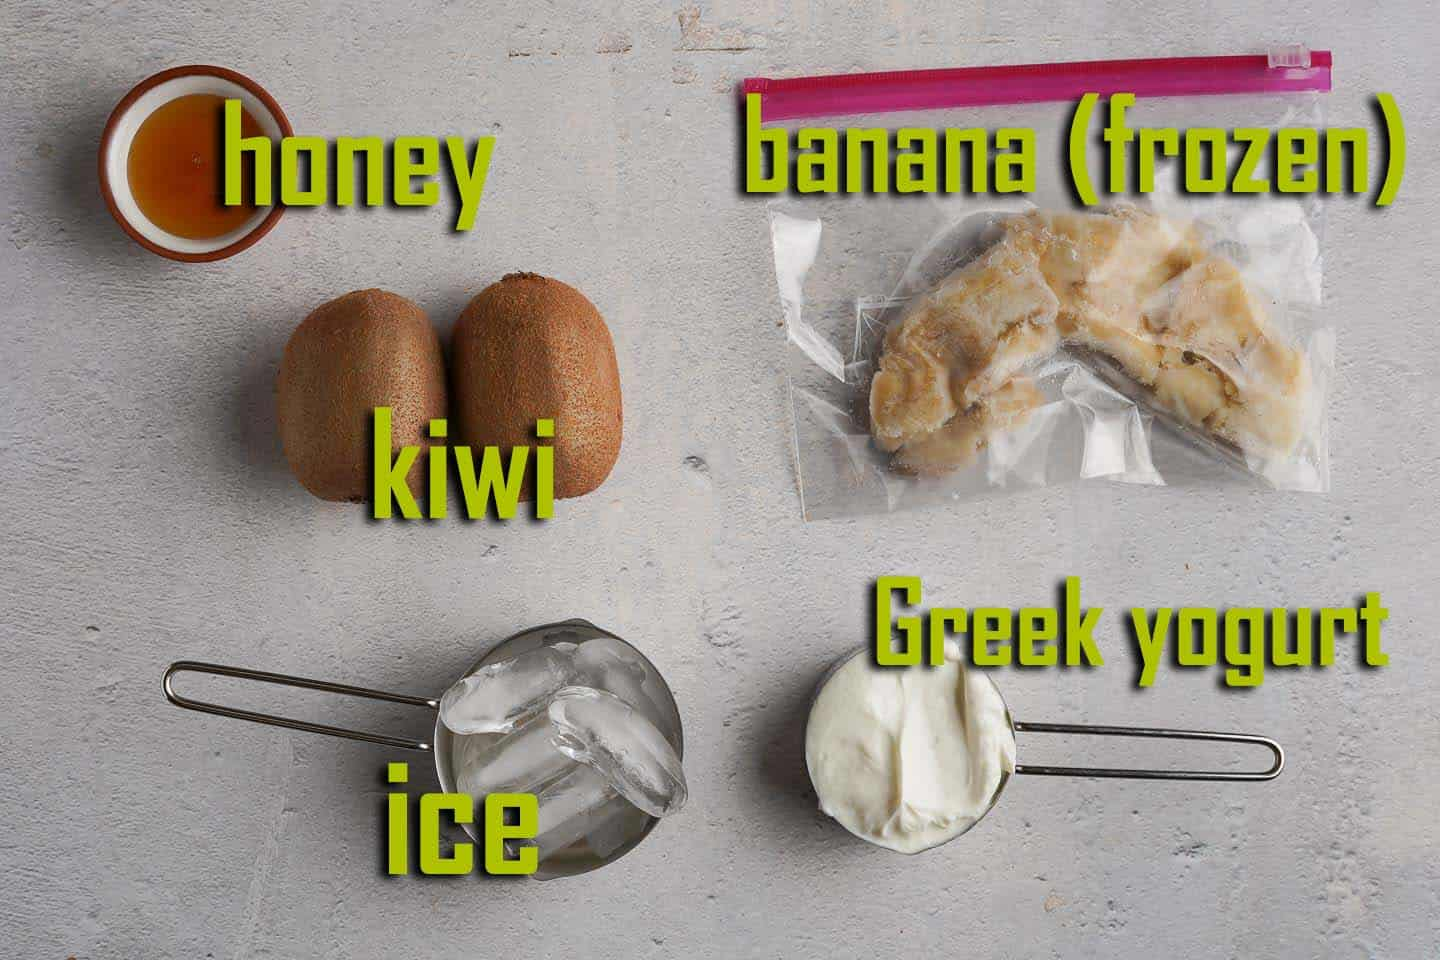 Display of Kiwi Banana Smoothie Ingredients